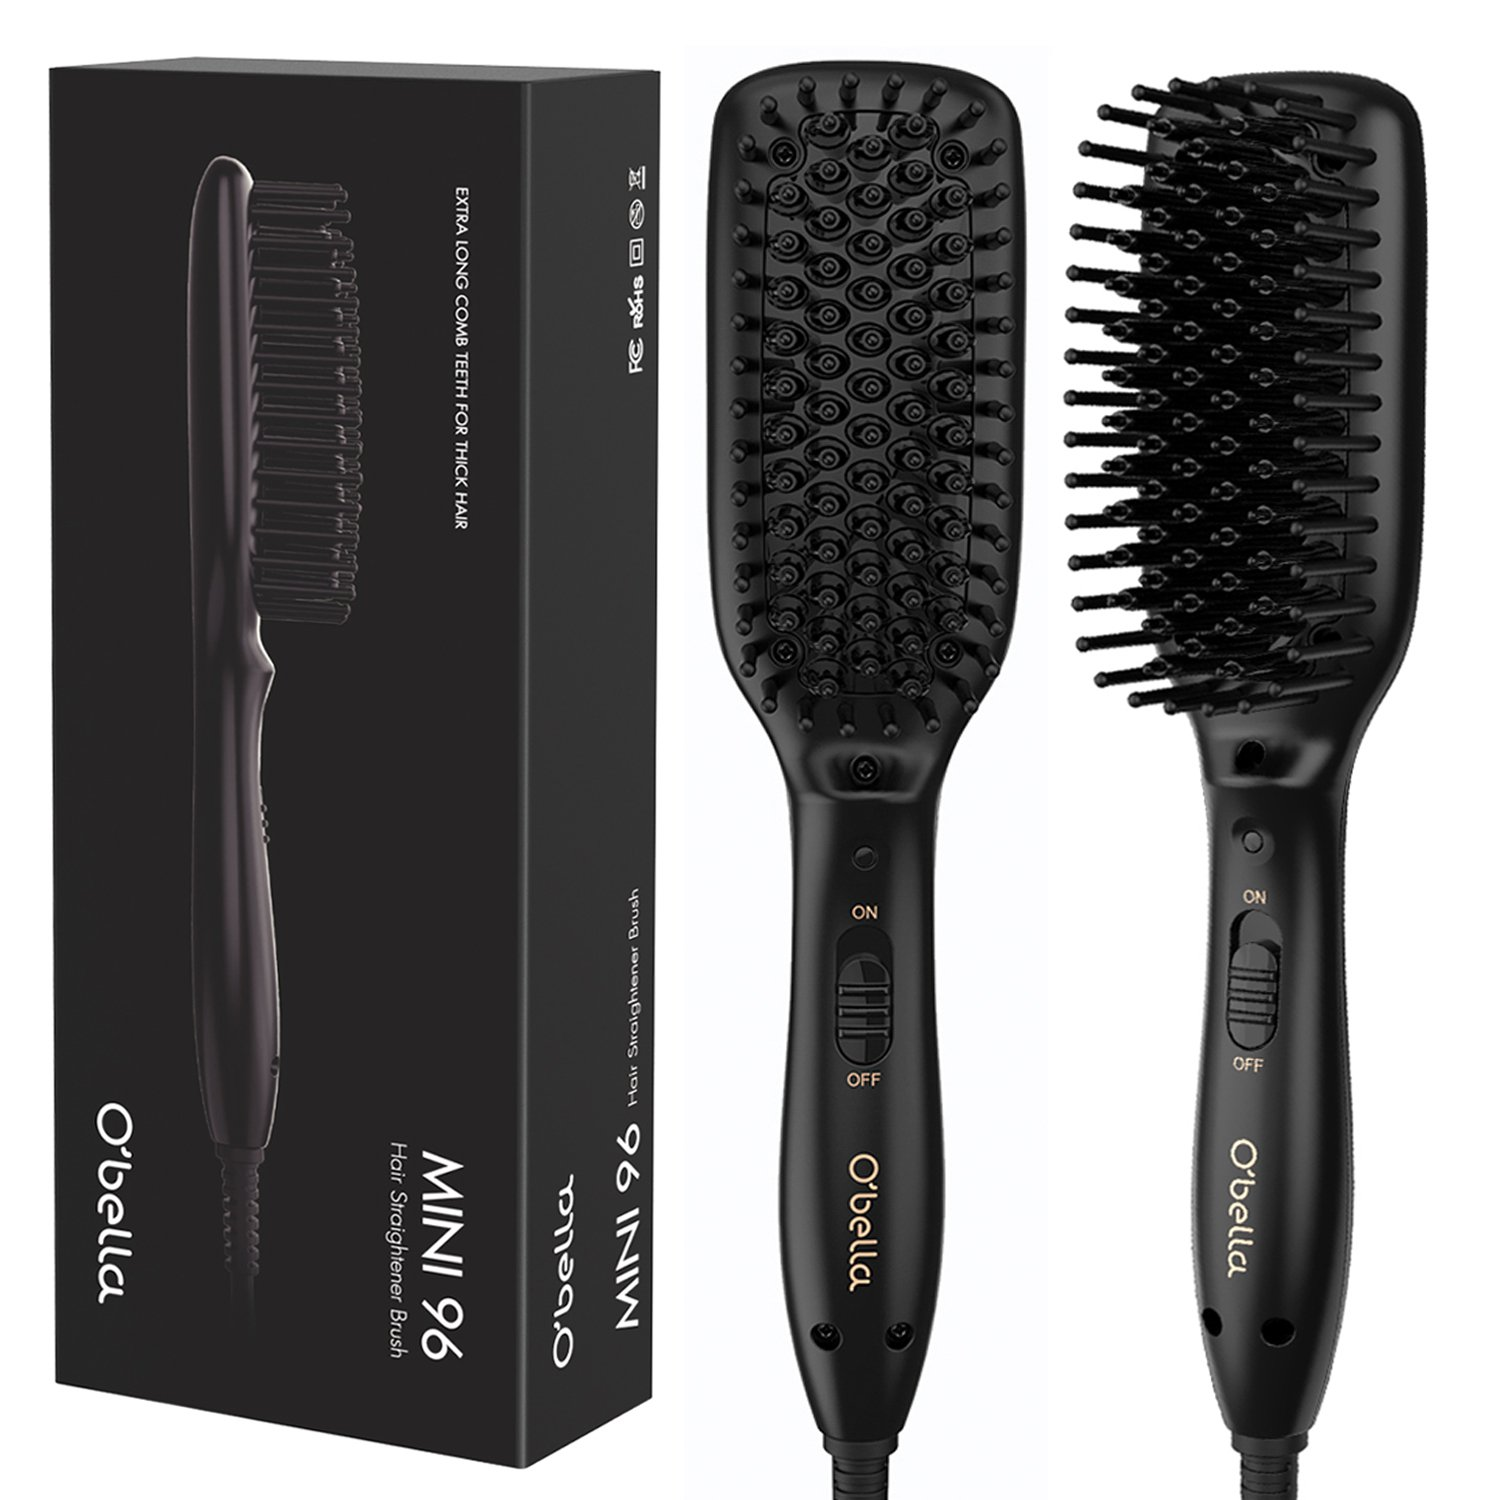 O'Bella Hair Straightener Brush Dual-Voltage 45 Second Fast Heat Up, 28mm Long&High Density Comb Teeth Anion Hair Straightener Brush for Long Curly Hair by O'Bella